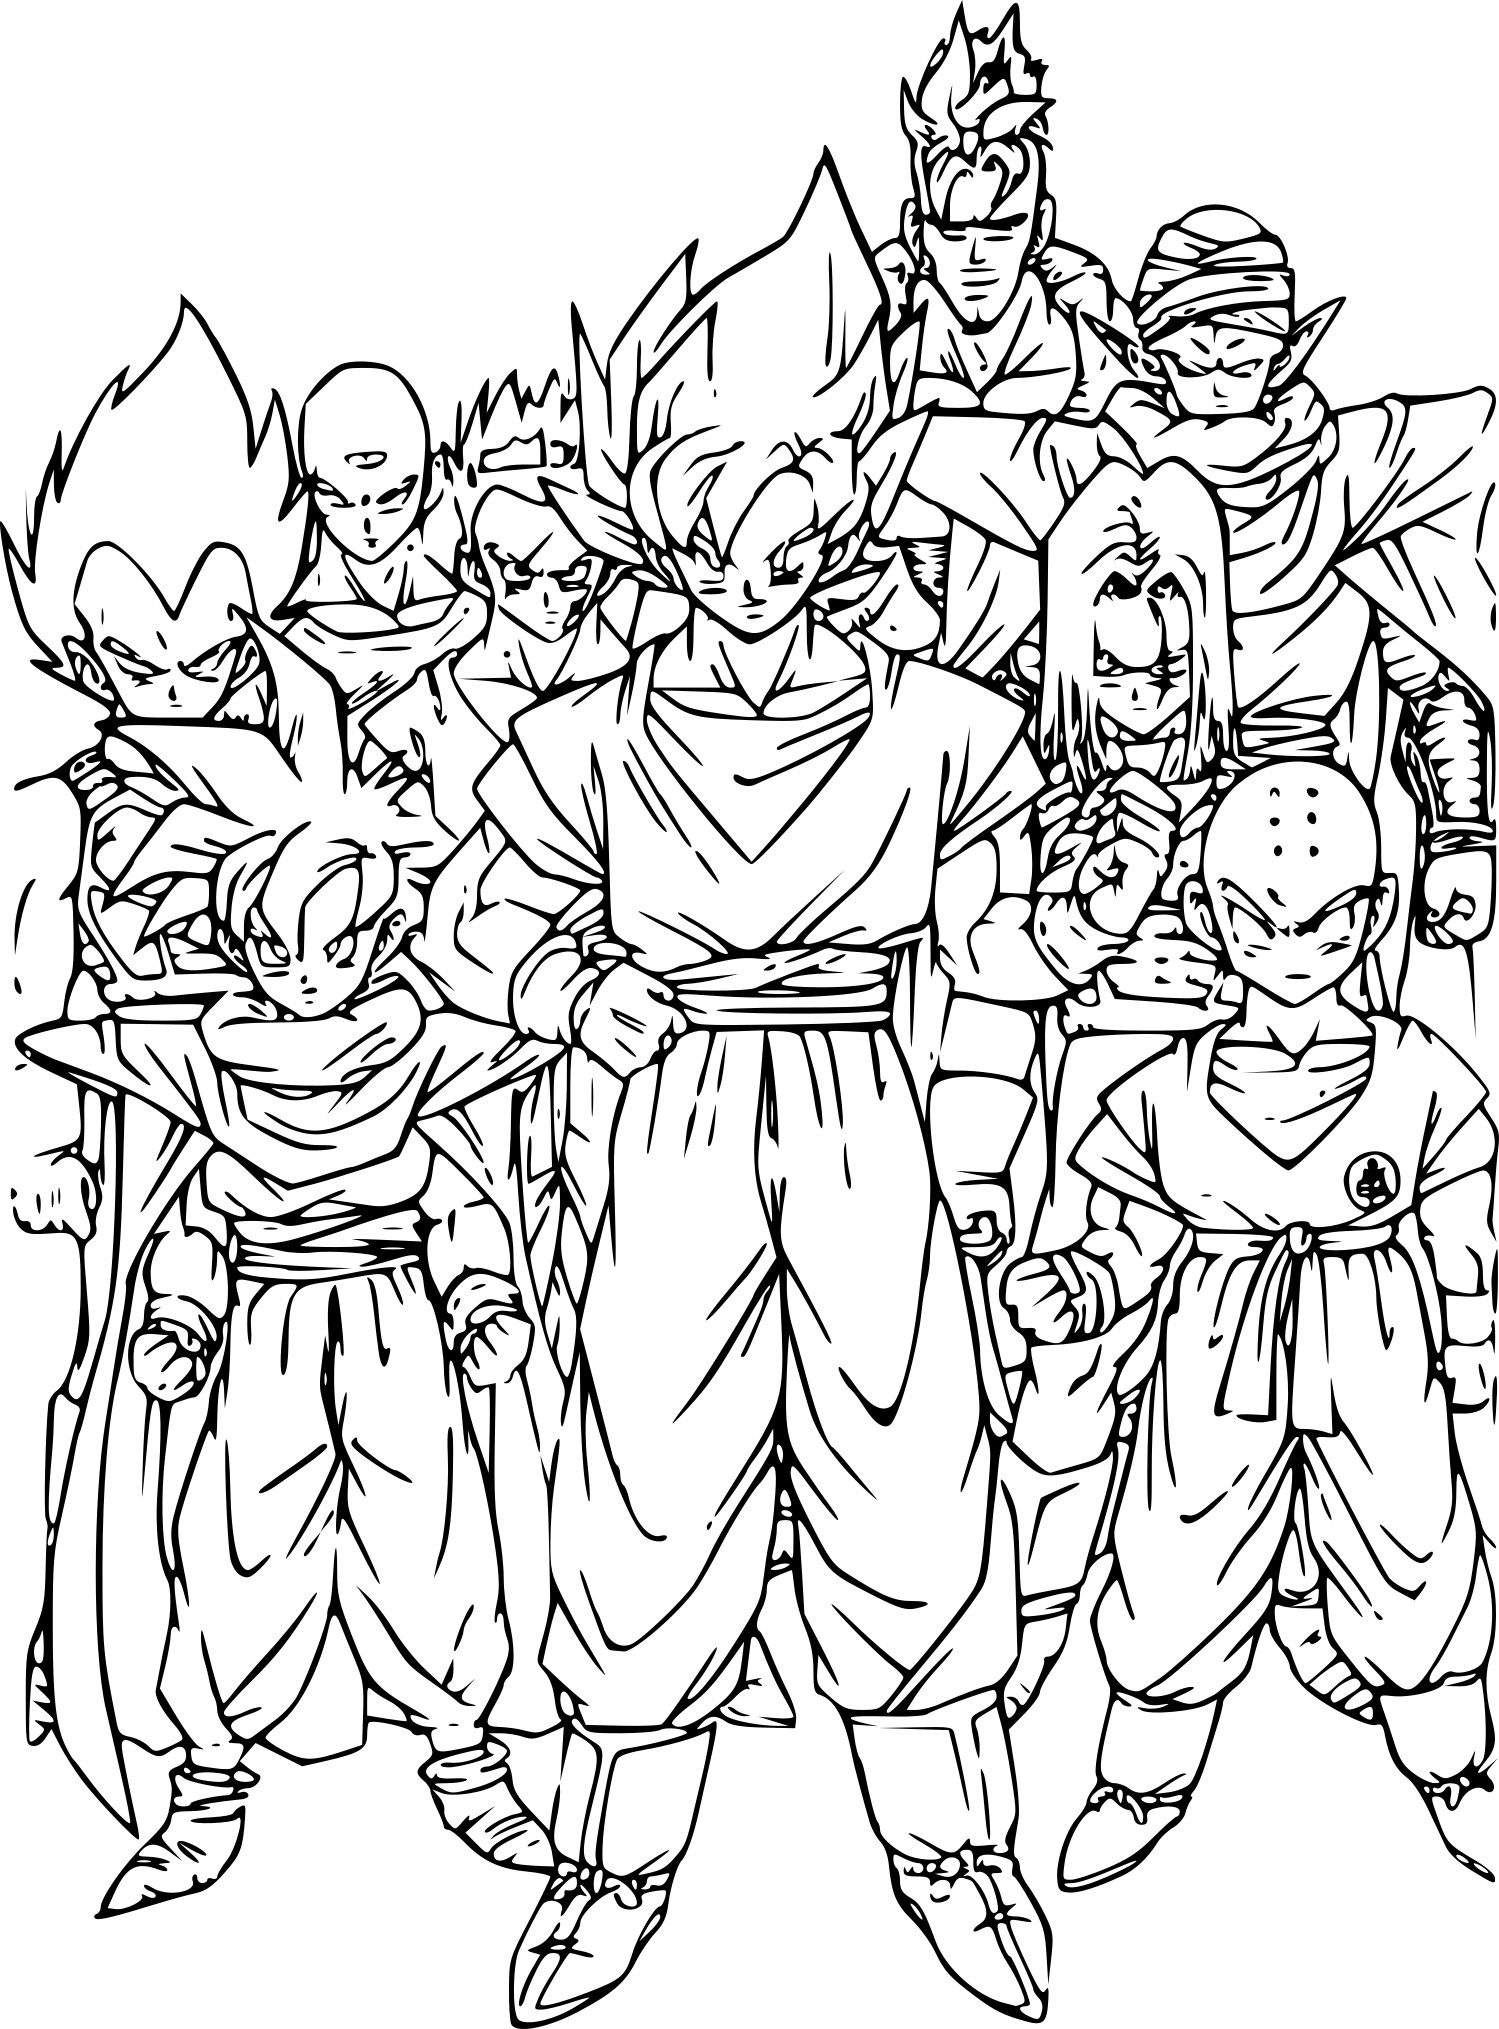 Dessin personnage manga dragon ball z dessin de manga - Coloriage personnage ...